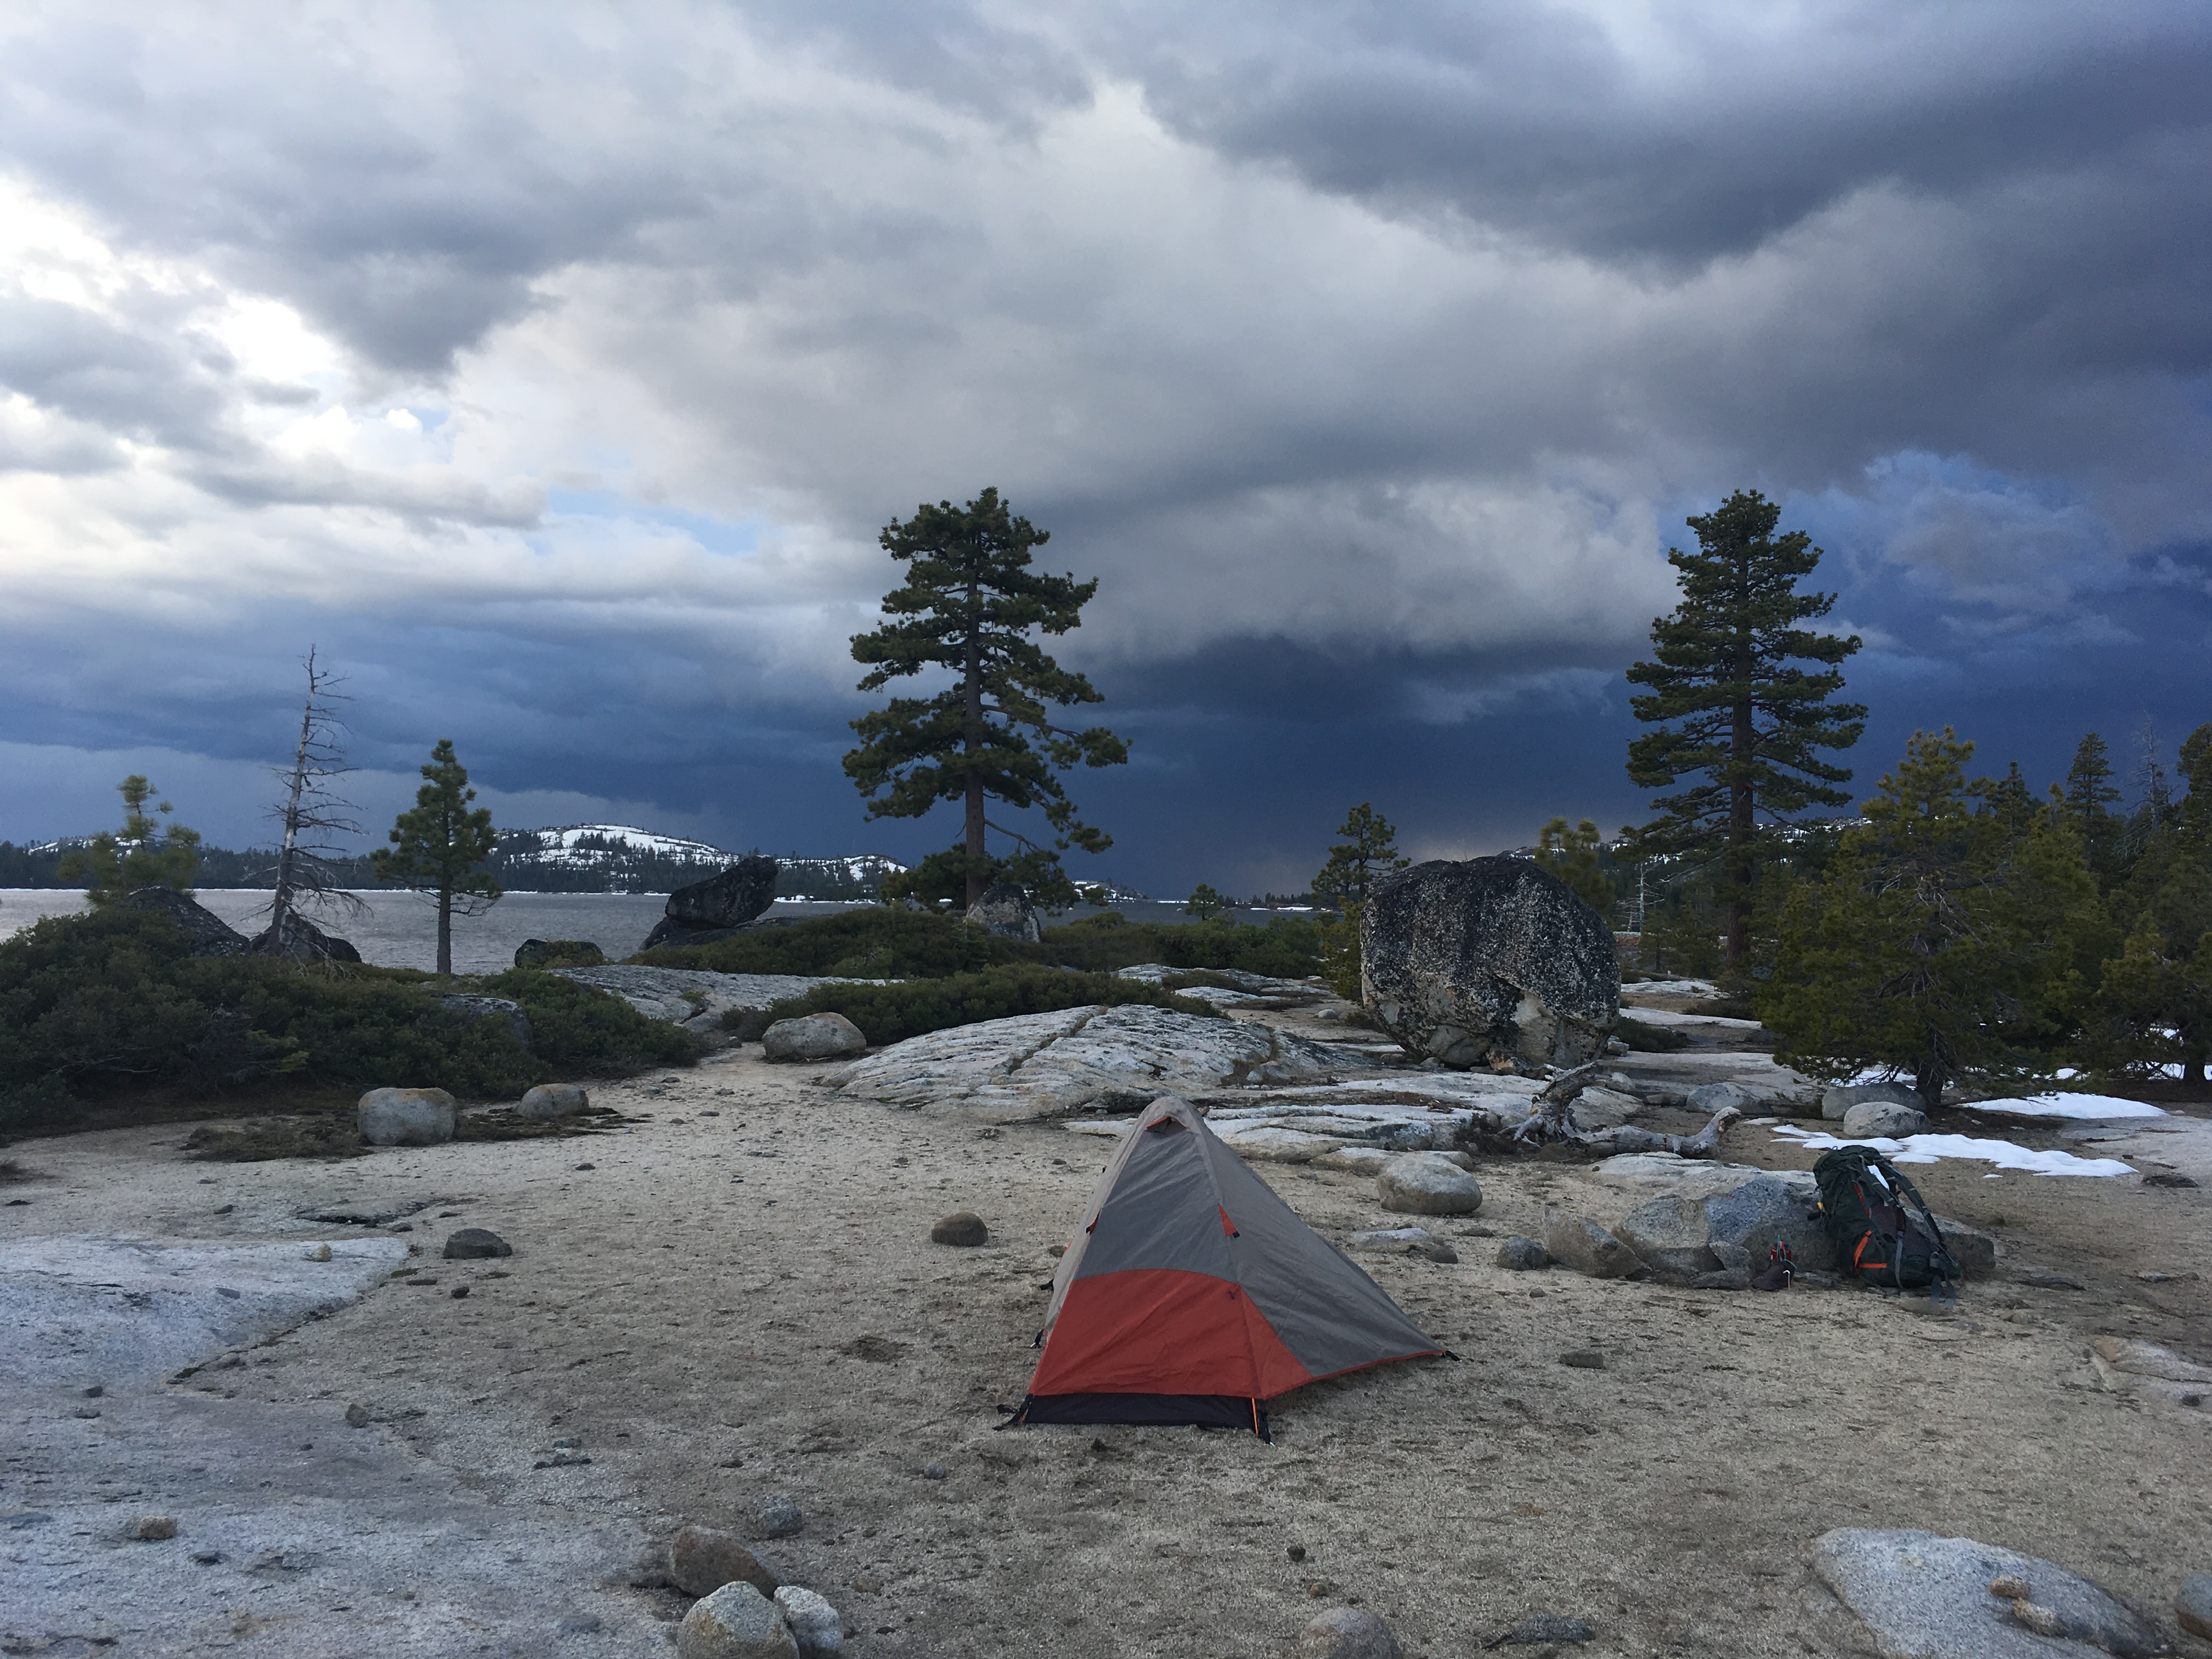 My first campsite.